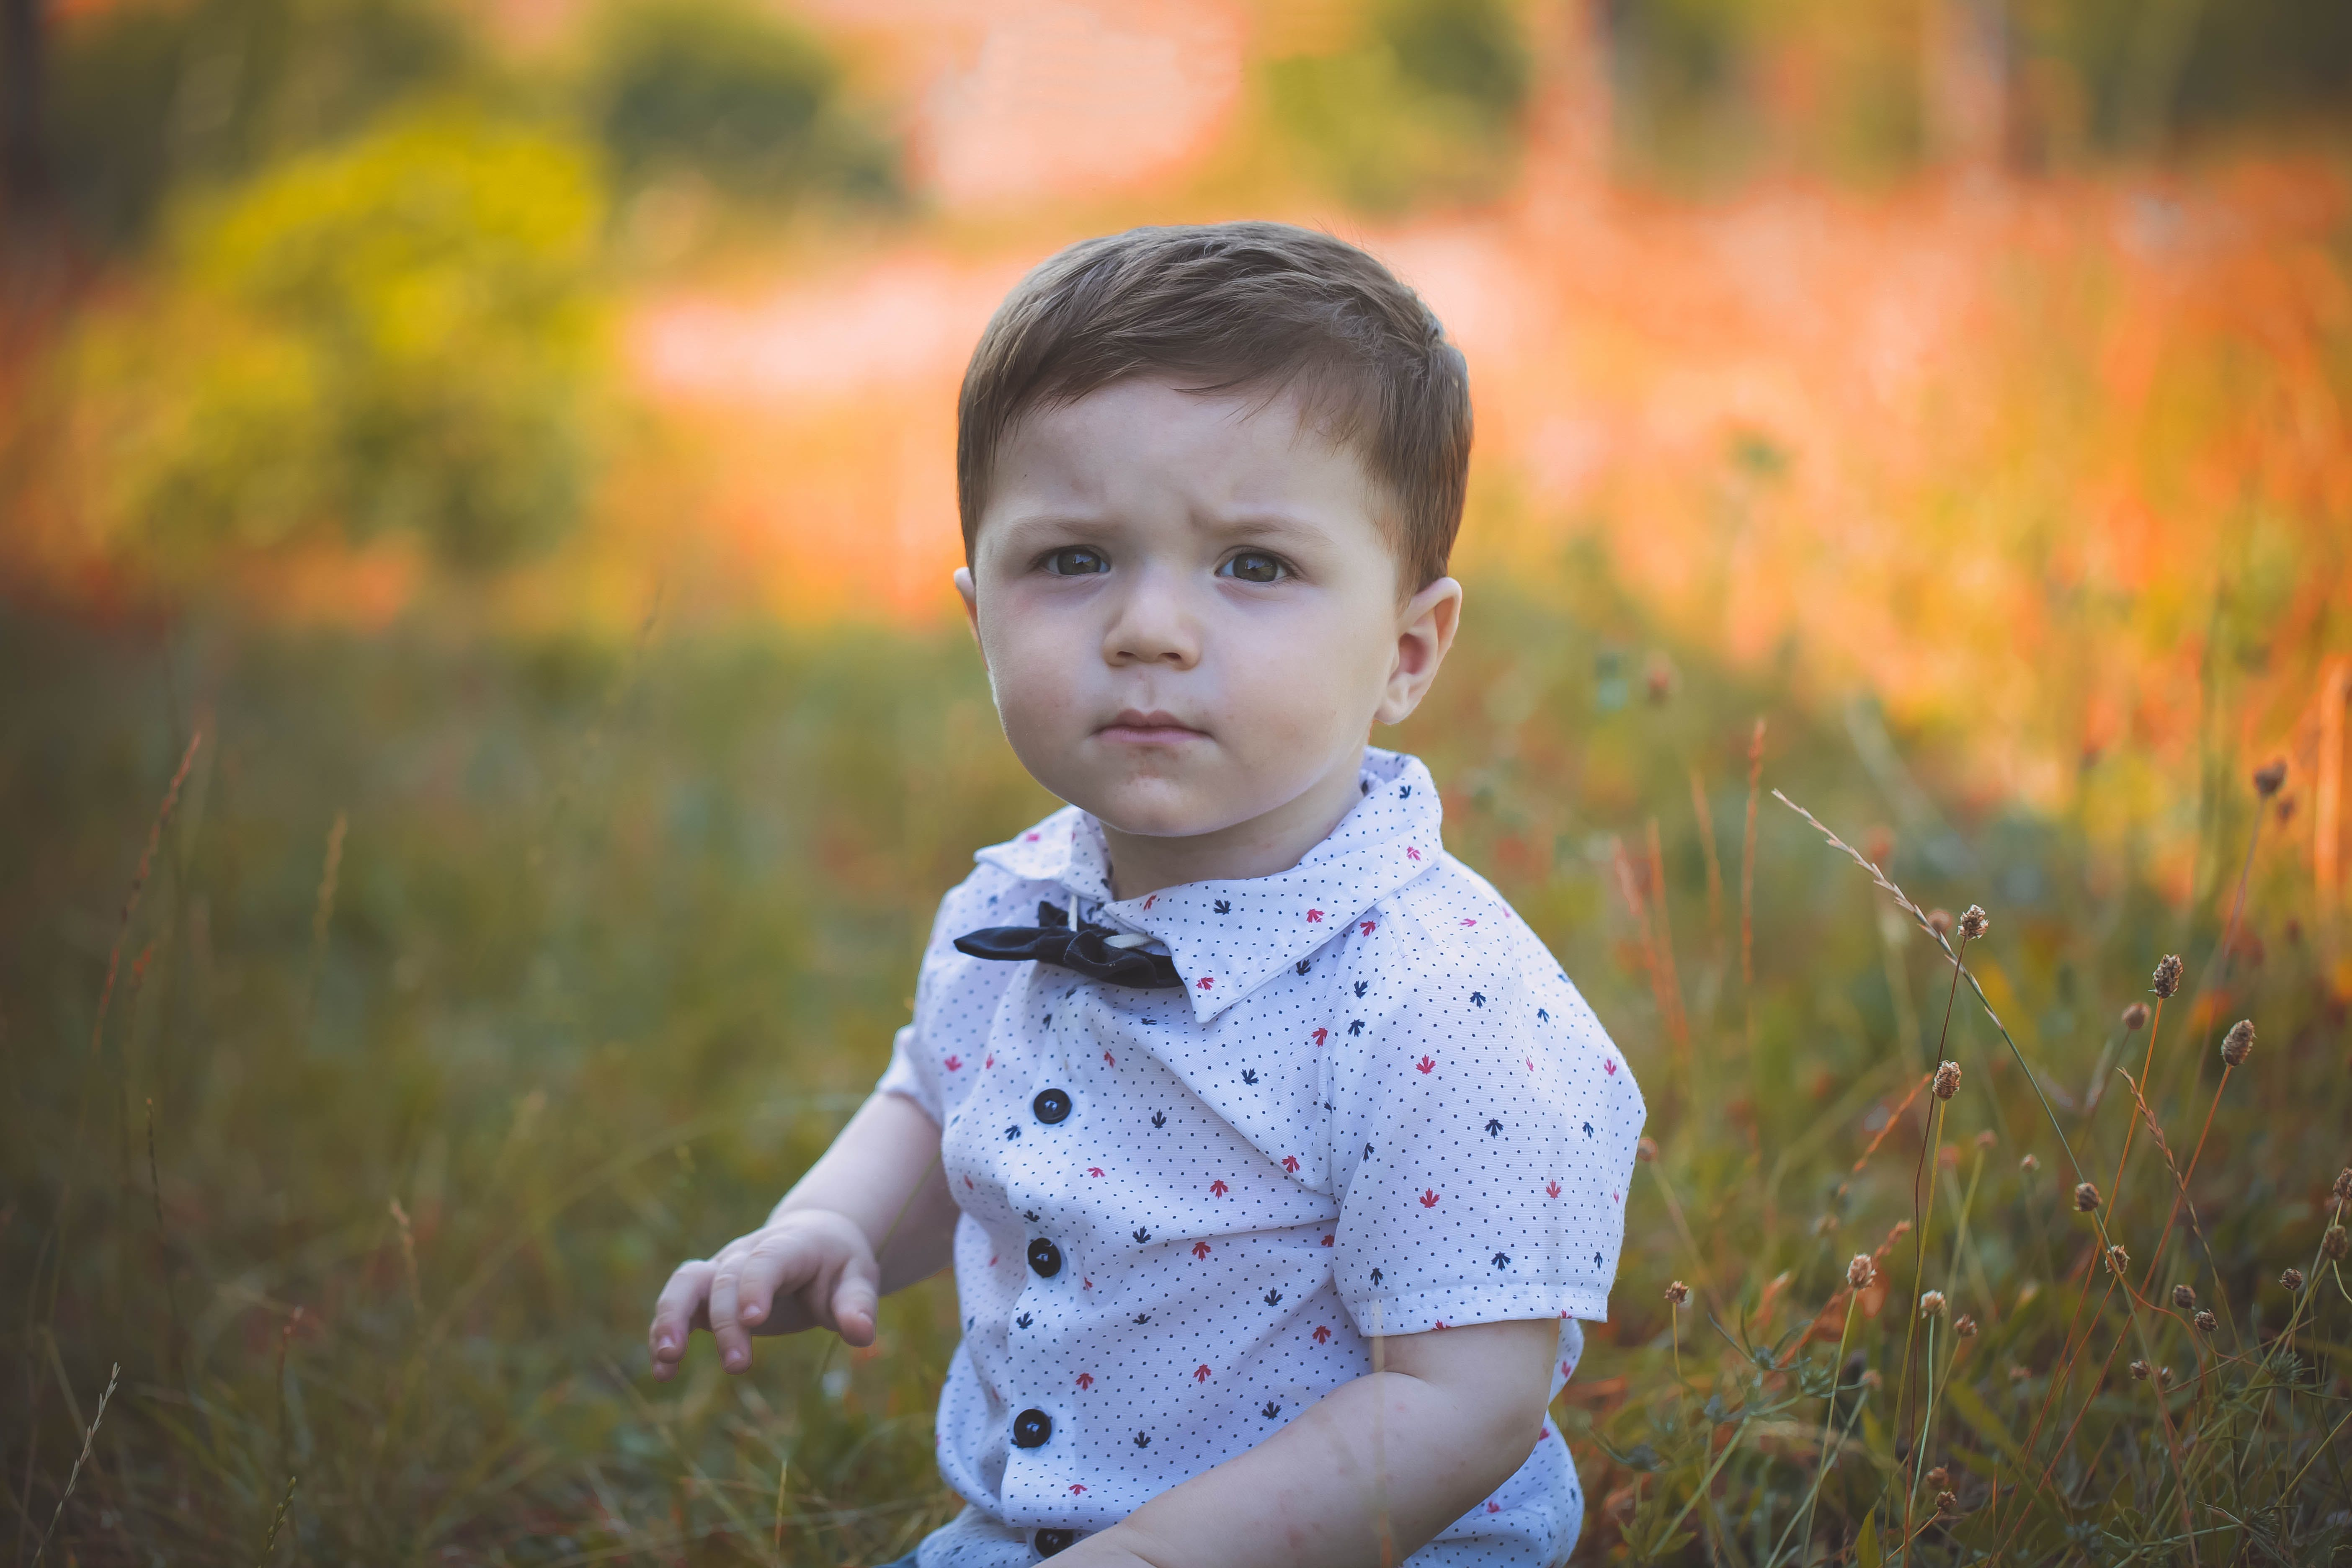 Selective Focus Photography of Toddler Wearing White Polo Shirt